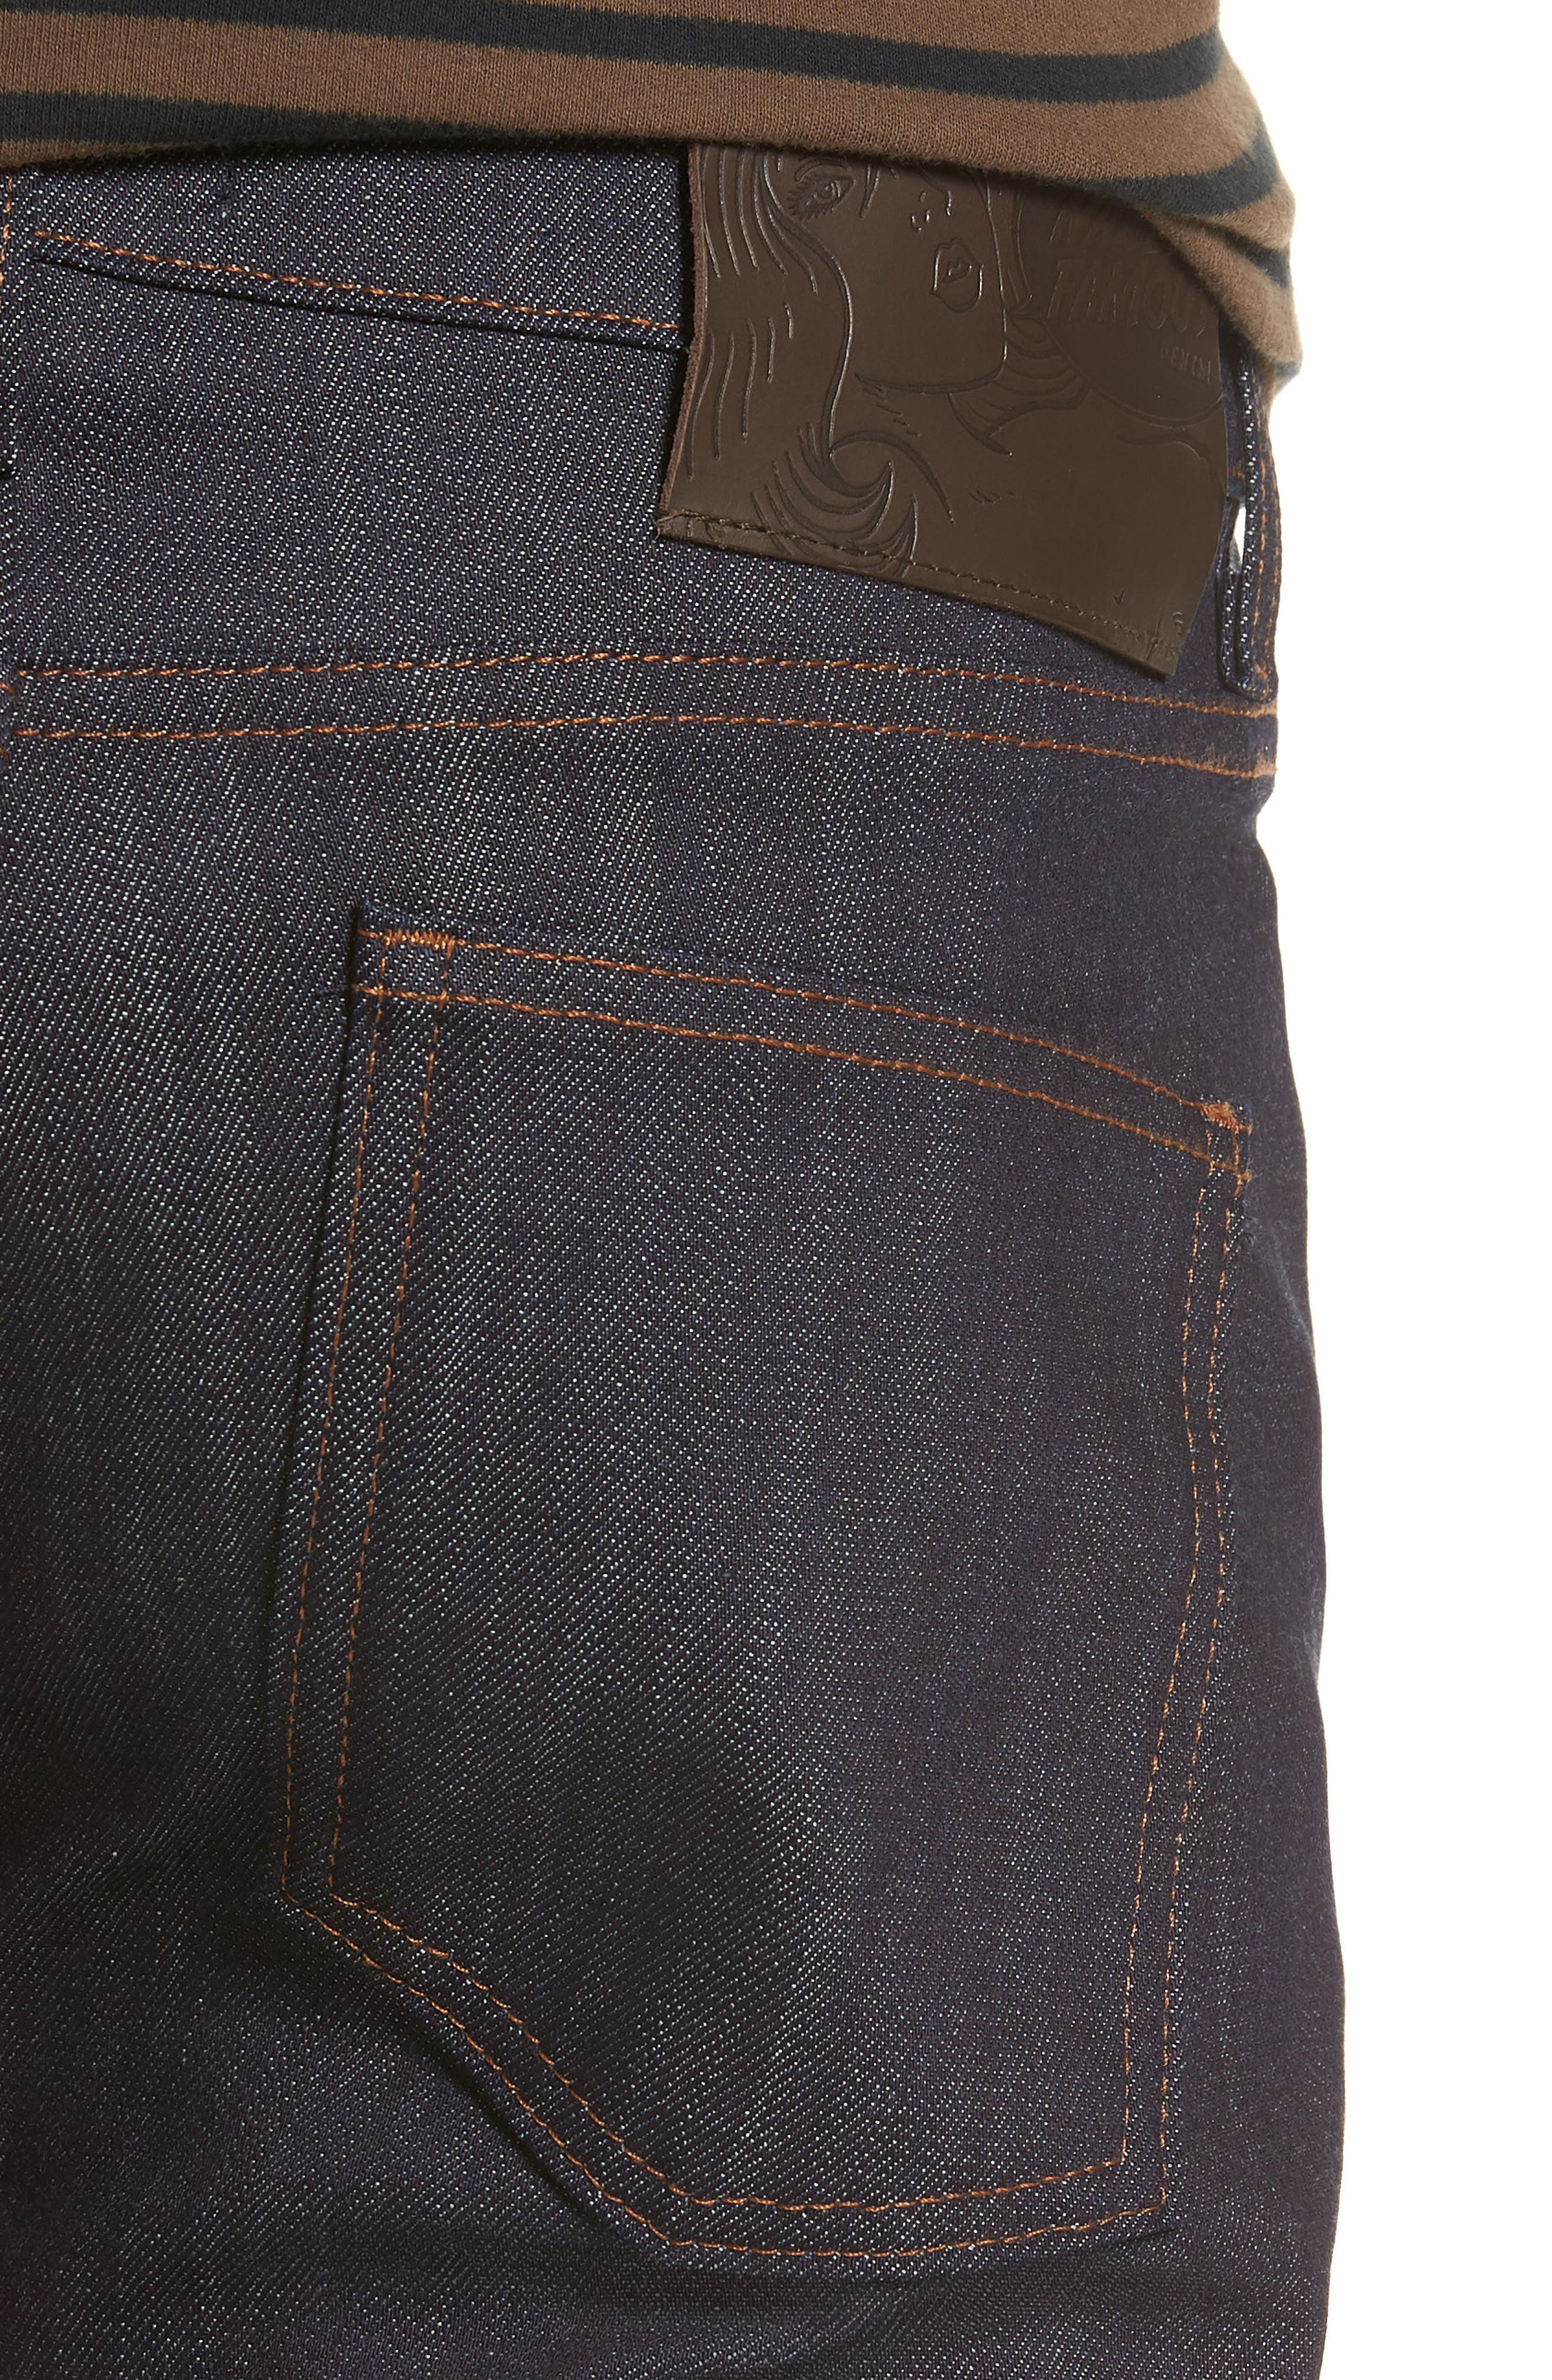 Naked & Famous Super Skinny Guy Skinny Fit Jeans,                             Alternate thumbnail 4, color,                             Indigo Power Stretch